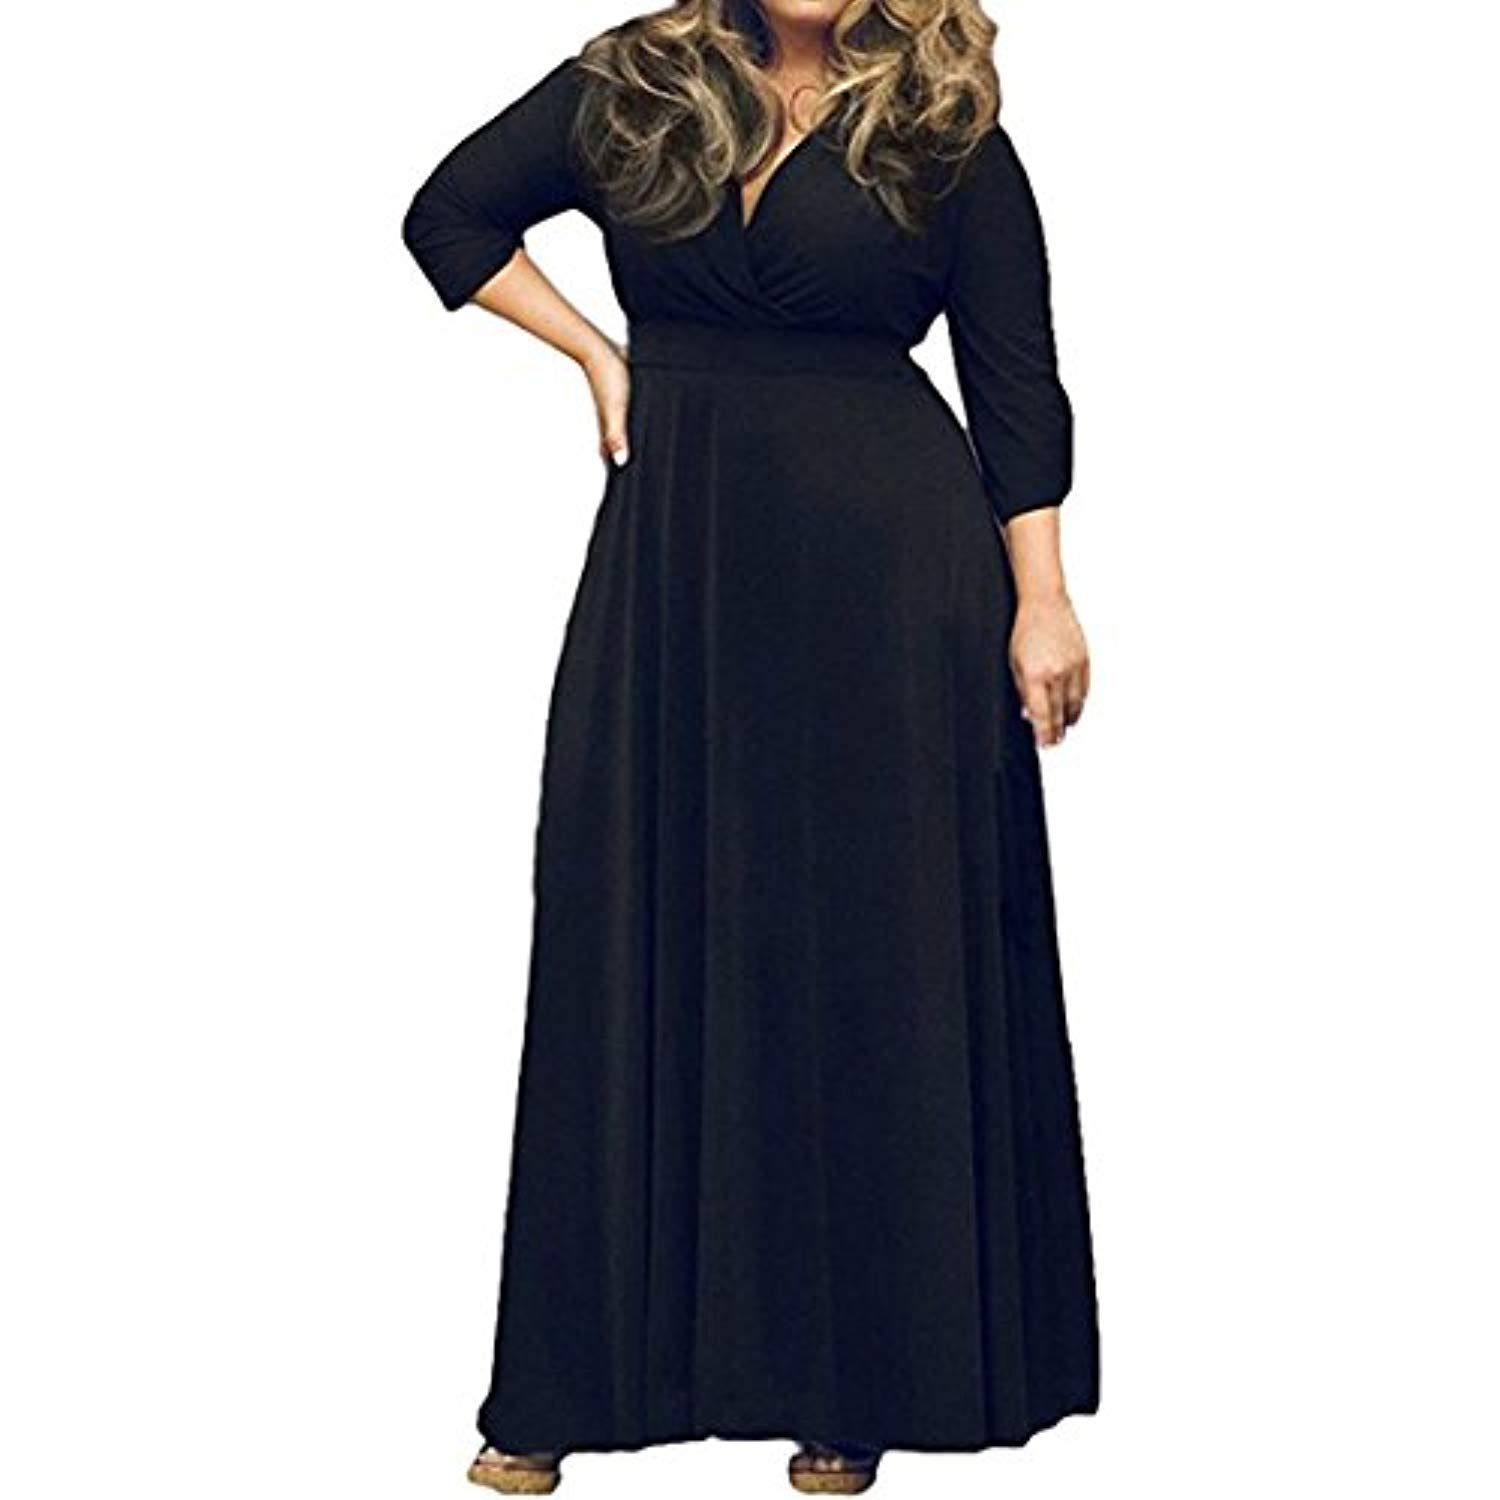 Womenus plus size maxi dress by winpe vneck solid sleeve